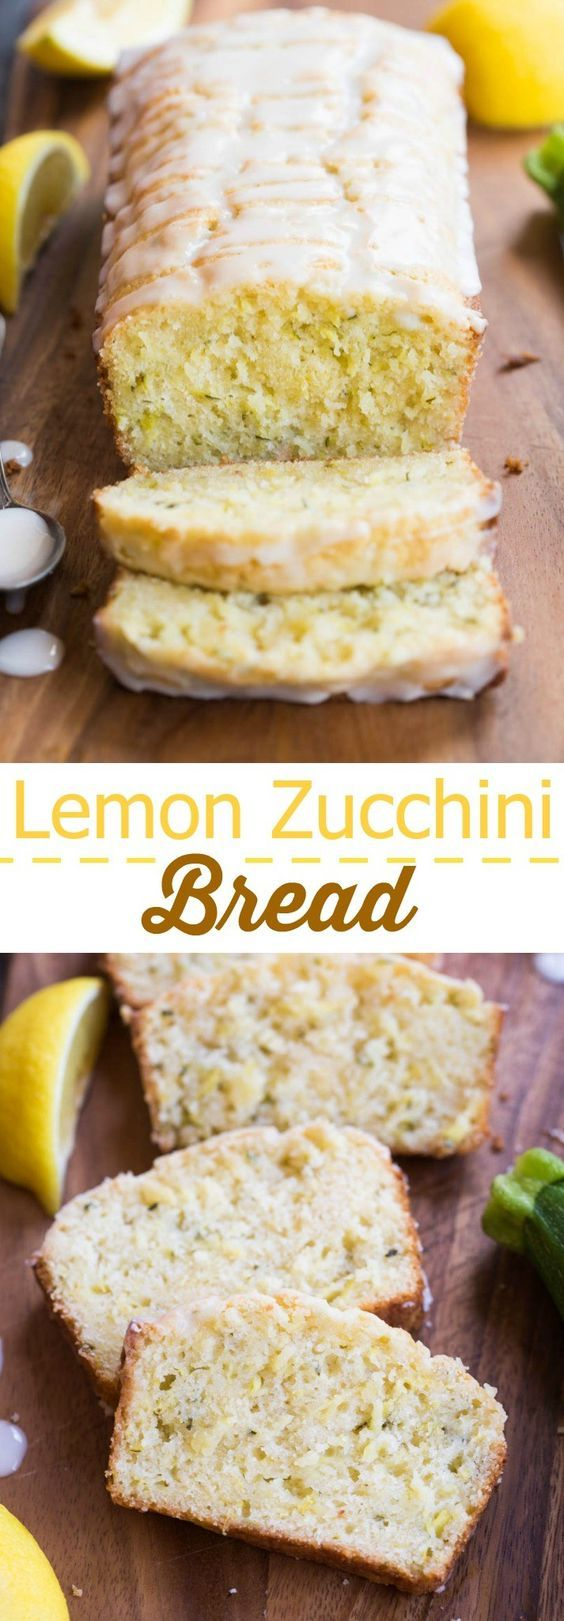 Photo of Lemon Zucchini Bread